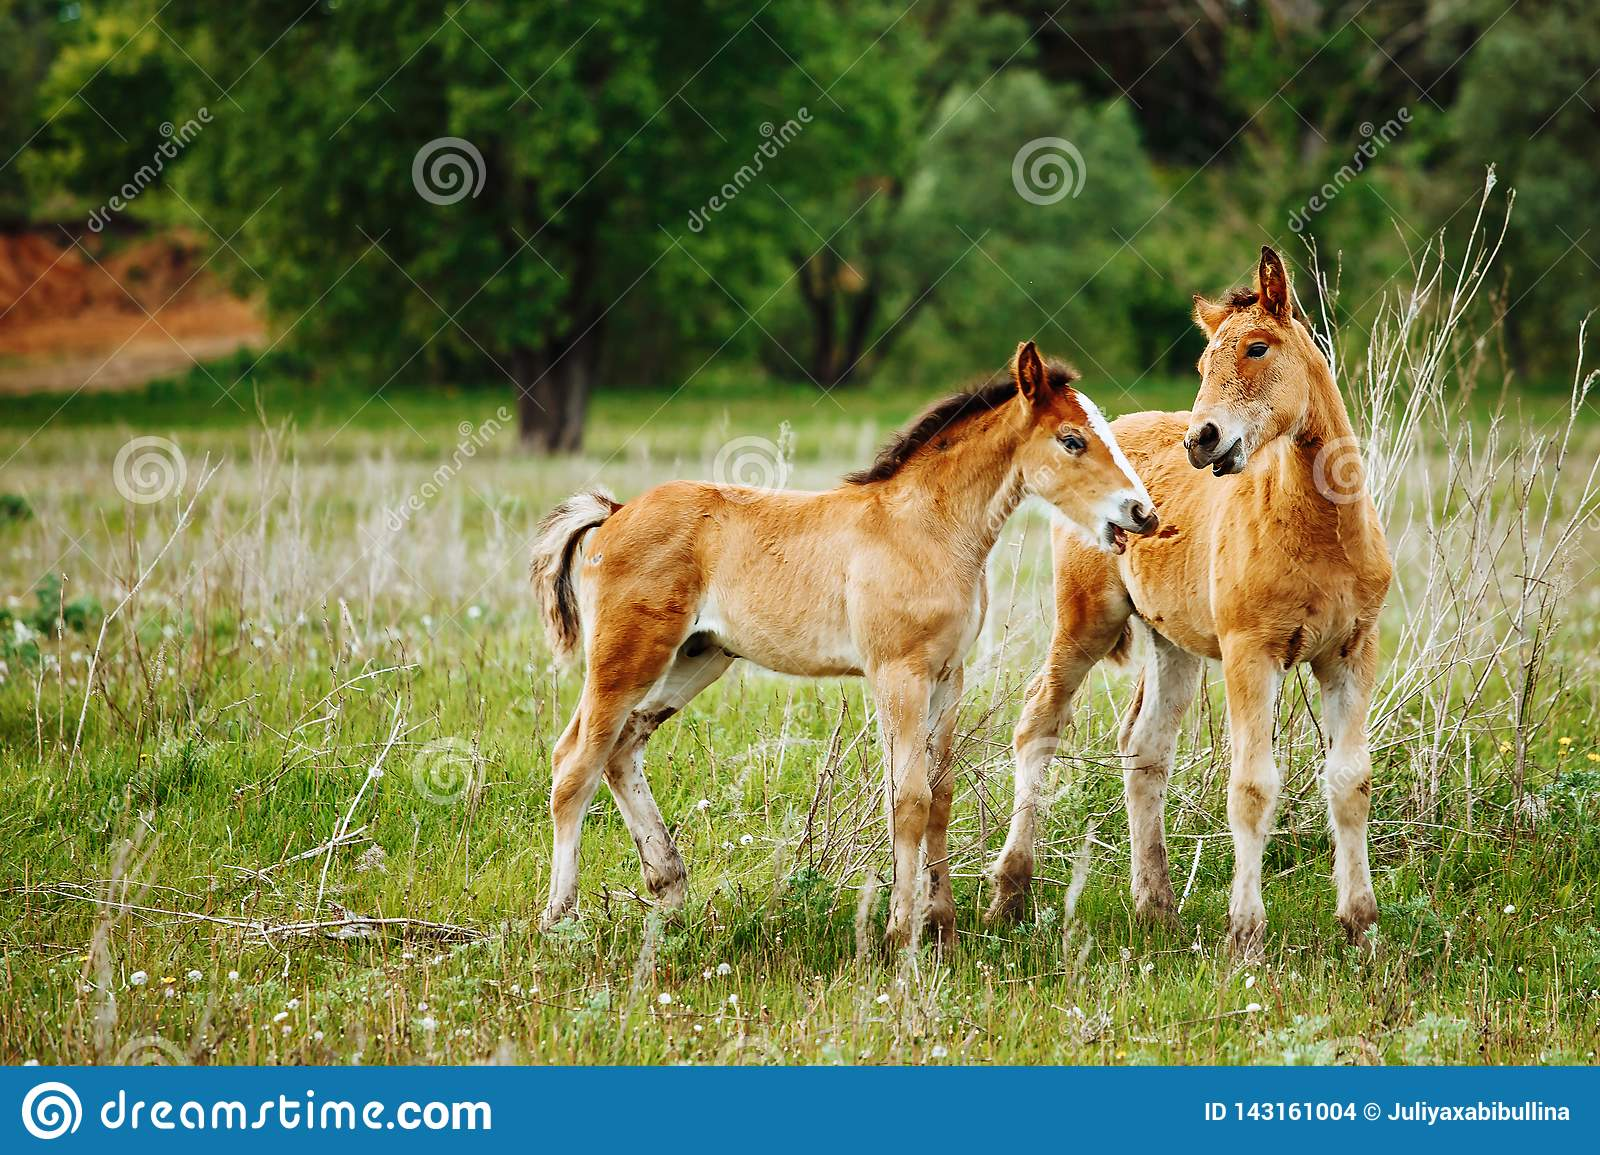 Beautiful Horse Is Eating Grass In The Field Stock Photo Image Of Playing Pasture 143161004